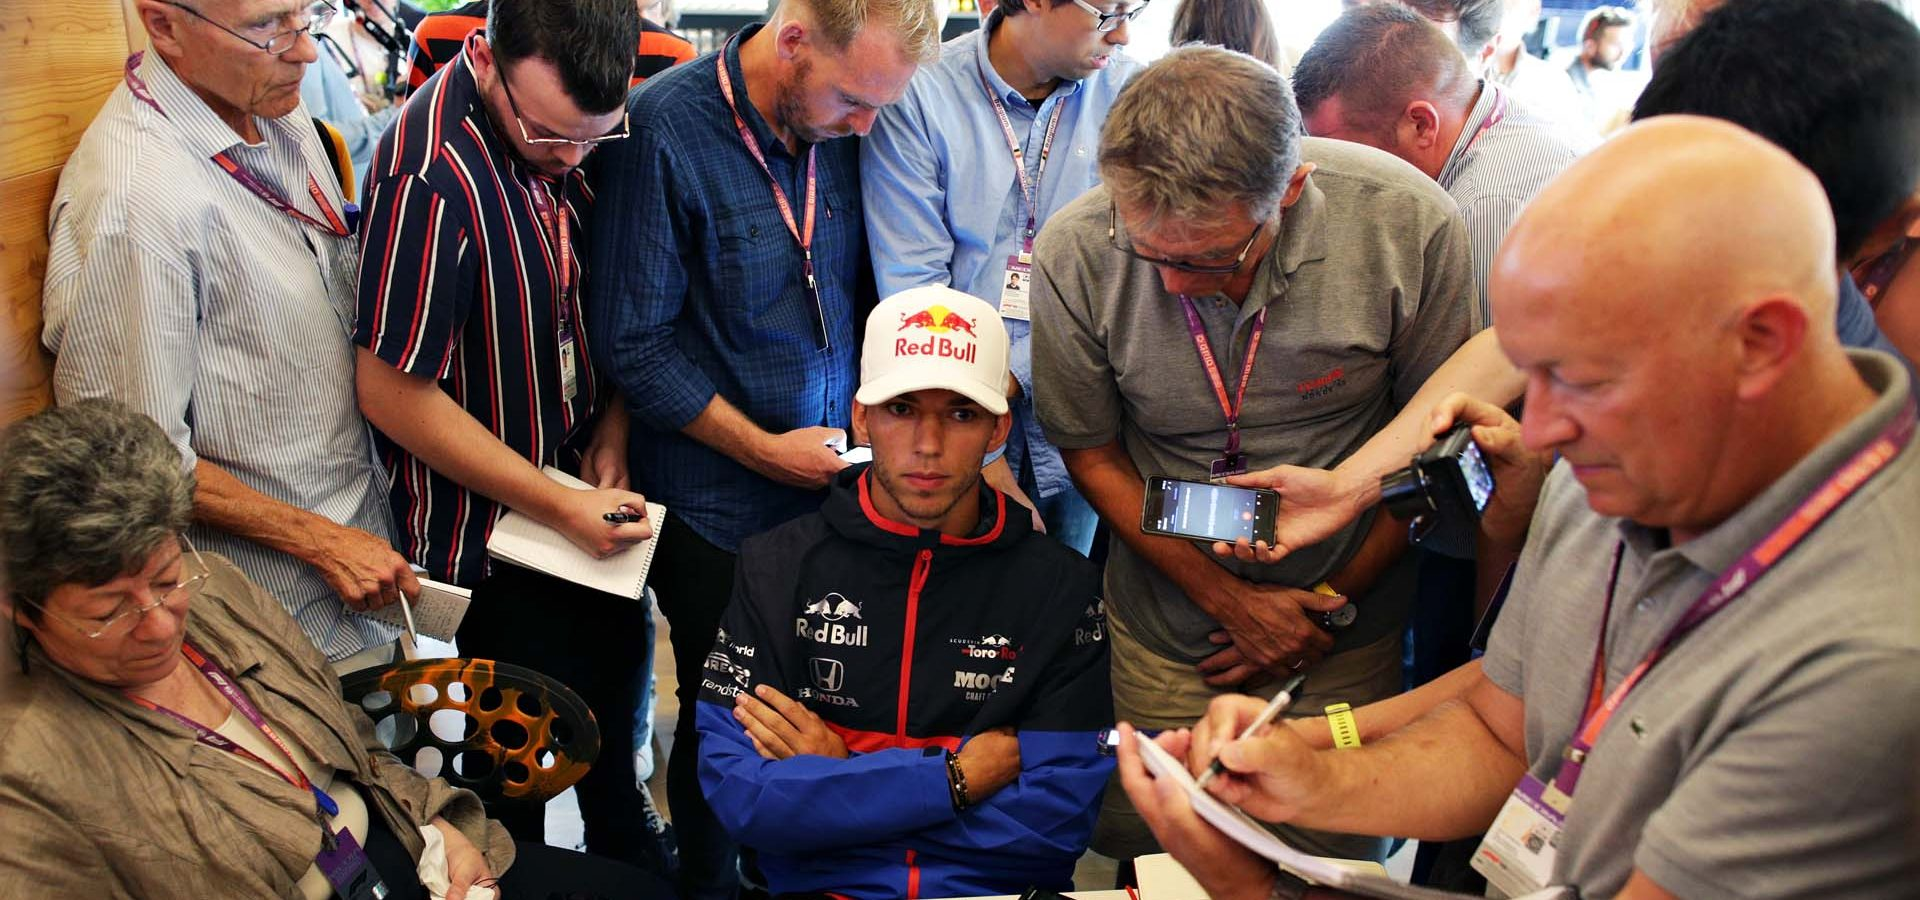 SPA, BELGIUM - AUGUST 29: Pierre Gasly of France and Scuderia Toro Rosso talks to the media in the Paddock during previews ahead of the F1 Grand Prix of Belgium at Circuit de Spa-Francorchamps on August 29, 2019 in Spa, Belgium. (Photo by Peter Fox/Getty Images) // Getty Images / Red Bull Content Pool  // AP-21DJRJAXN1W11 // Usage for editorial use only //